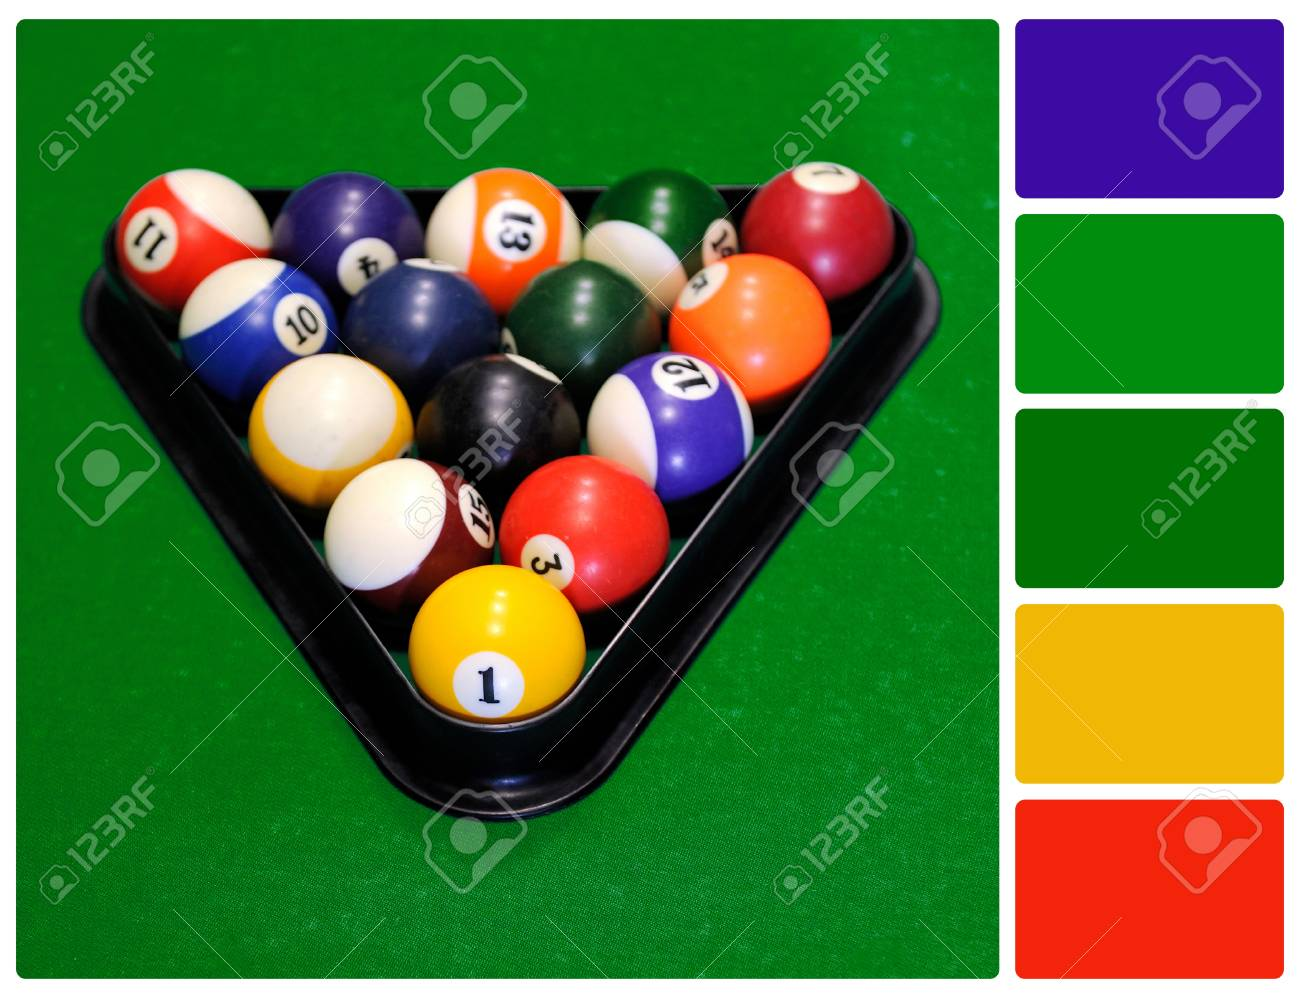 quality tournment covers for concept billiard styles and table clear cue awesome pool aflk magnetic balls pic